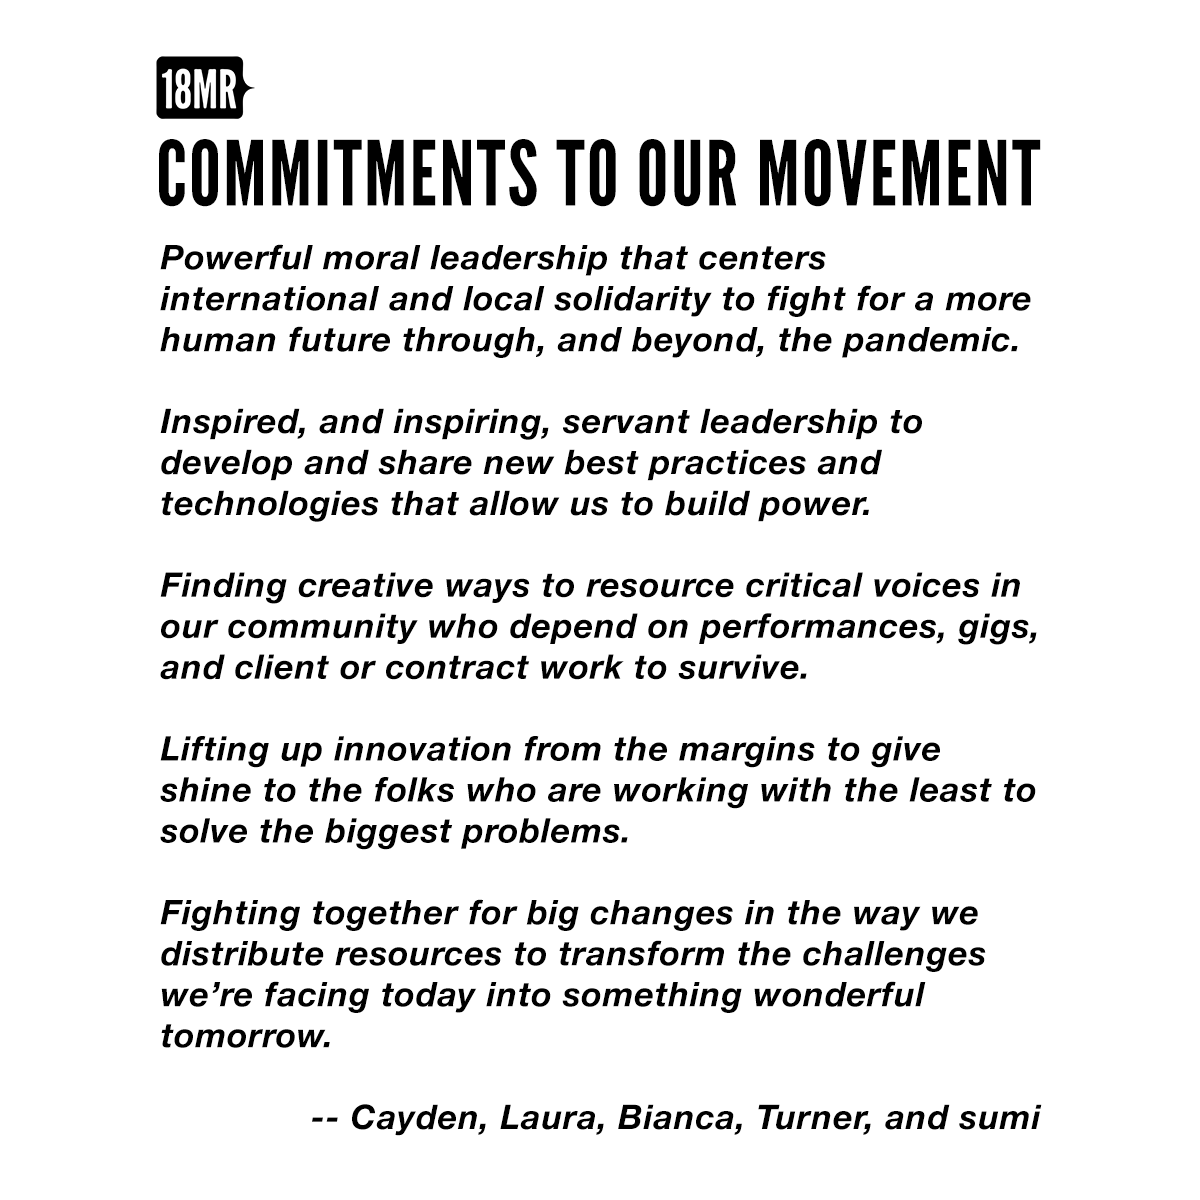 Our Commitments to Our Movements - Powerful moral leadership that centers international and local solidarity to fight for a more human future through, and beyond, the pandemic. - Inspired, and inspiring, servant leadership to develop and share new best practices and technologies that allow us to build power. - Finding creative ways to resource critical voices in our community who depend on performances, gigs, and client or contract work to survive. - Lifting up innovation from the margins to give shine to the folks who are working with the least to solve the biggest problems. - Fighting together for big changes in the way we distribute resources to transform the challenges we're facing today into something wonderful tomorrow.